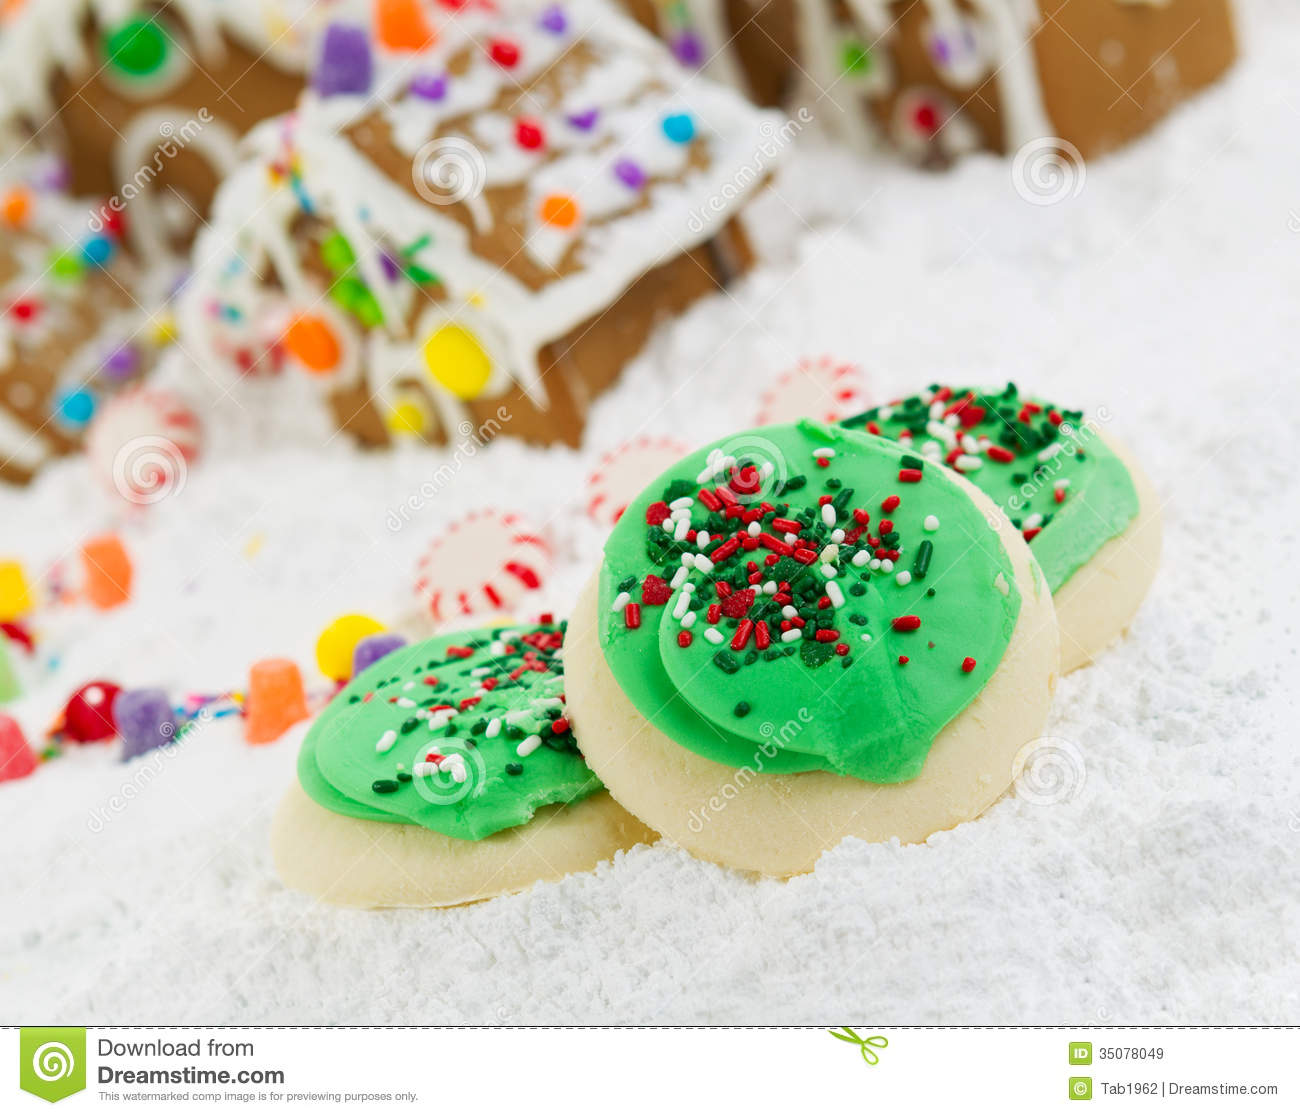 Frosted Holiday Cookies For The Season Of Joy Royalty Free Stock ...